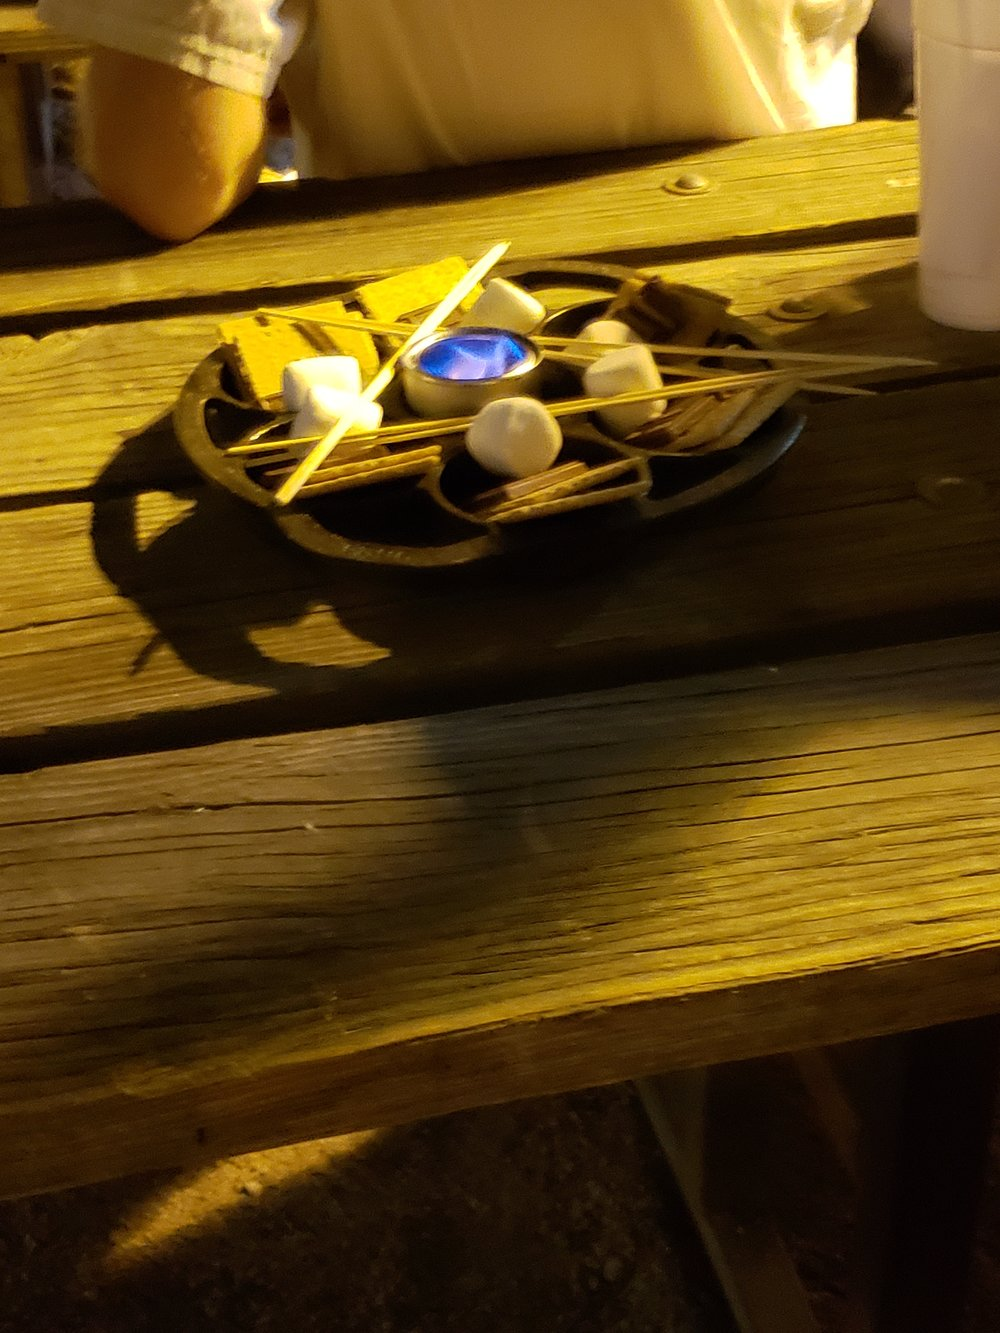 Making s'mores at an after class getaway at the Buffalo Chip Saloon in Cave Creek AZ